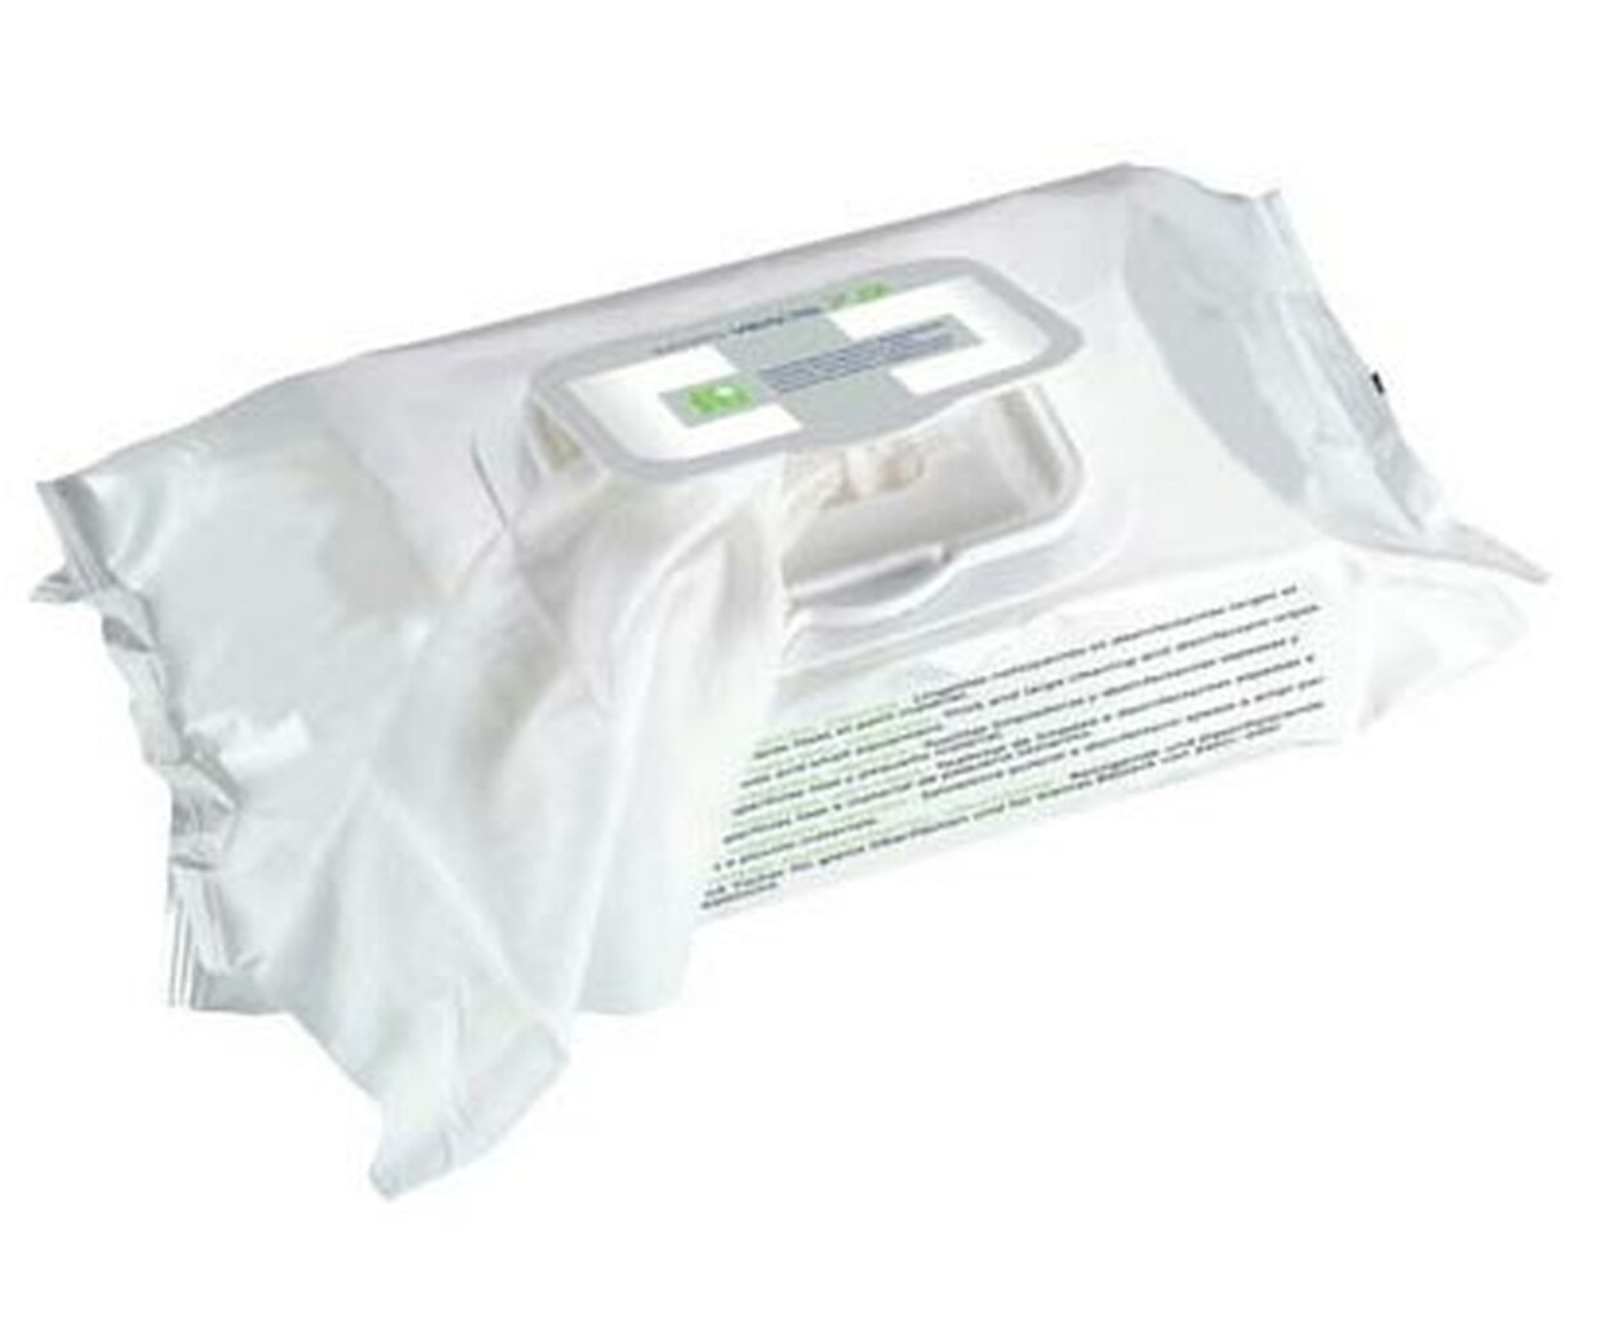 An image of Dento-Viractis 79 Wipes Pack of 100